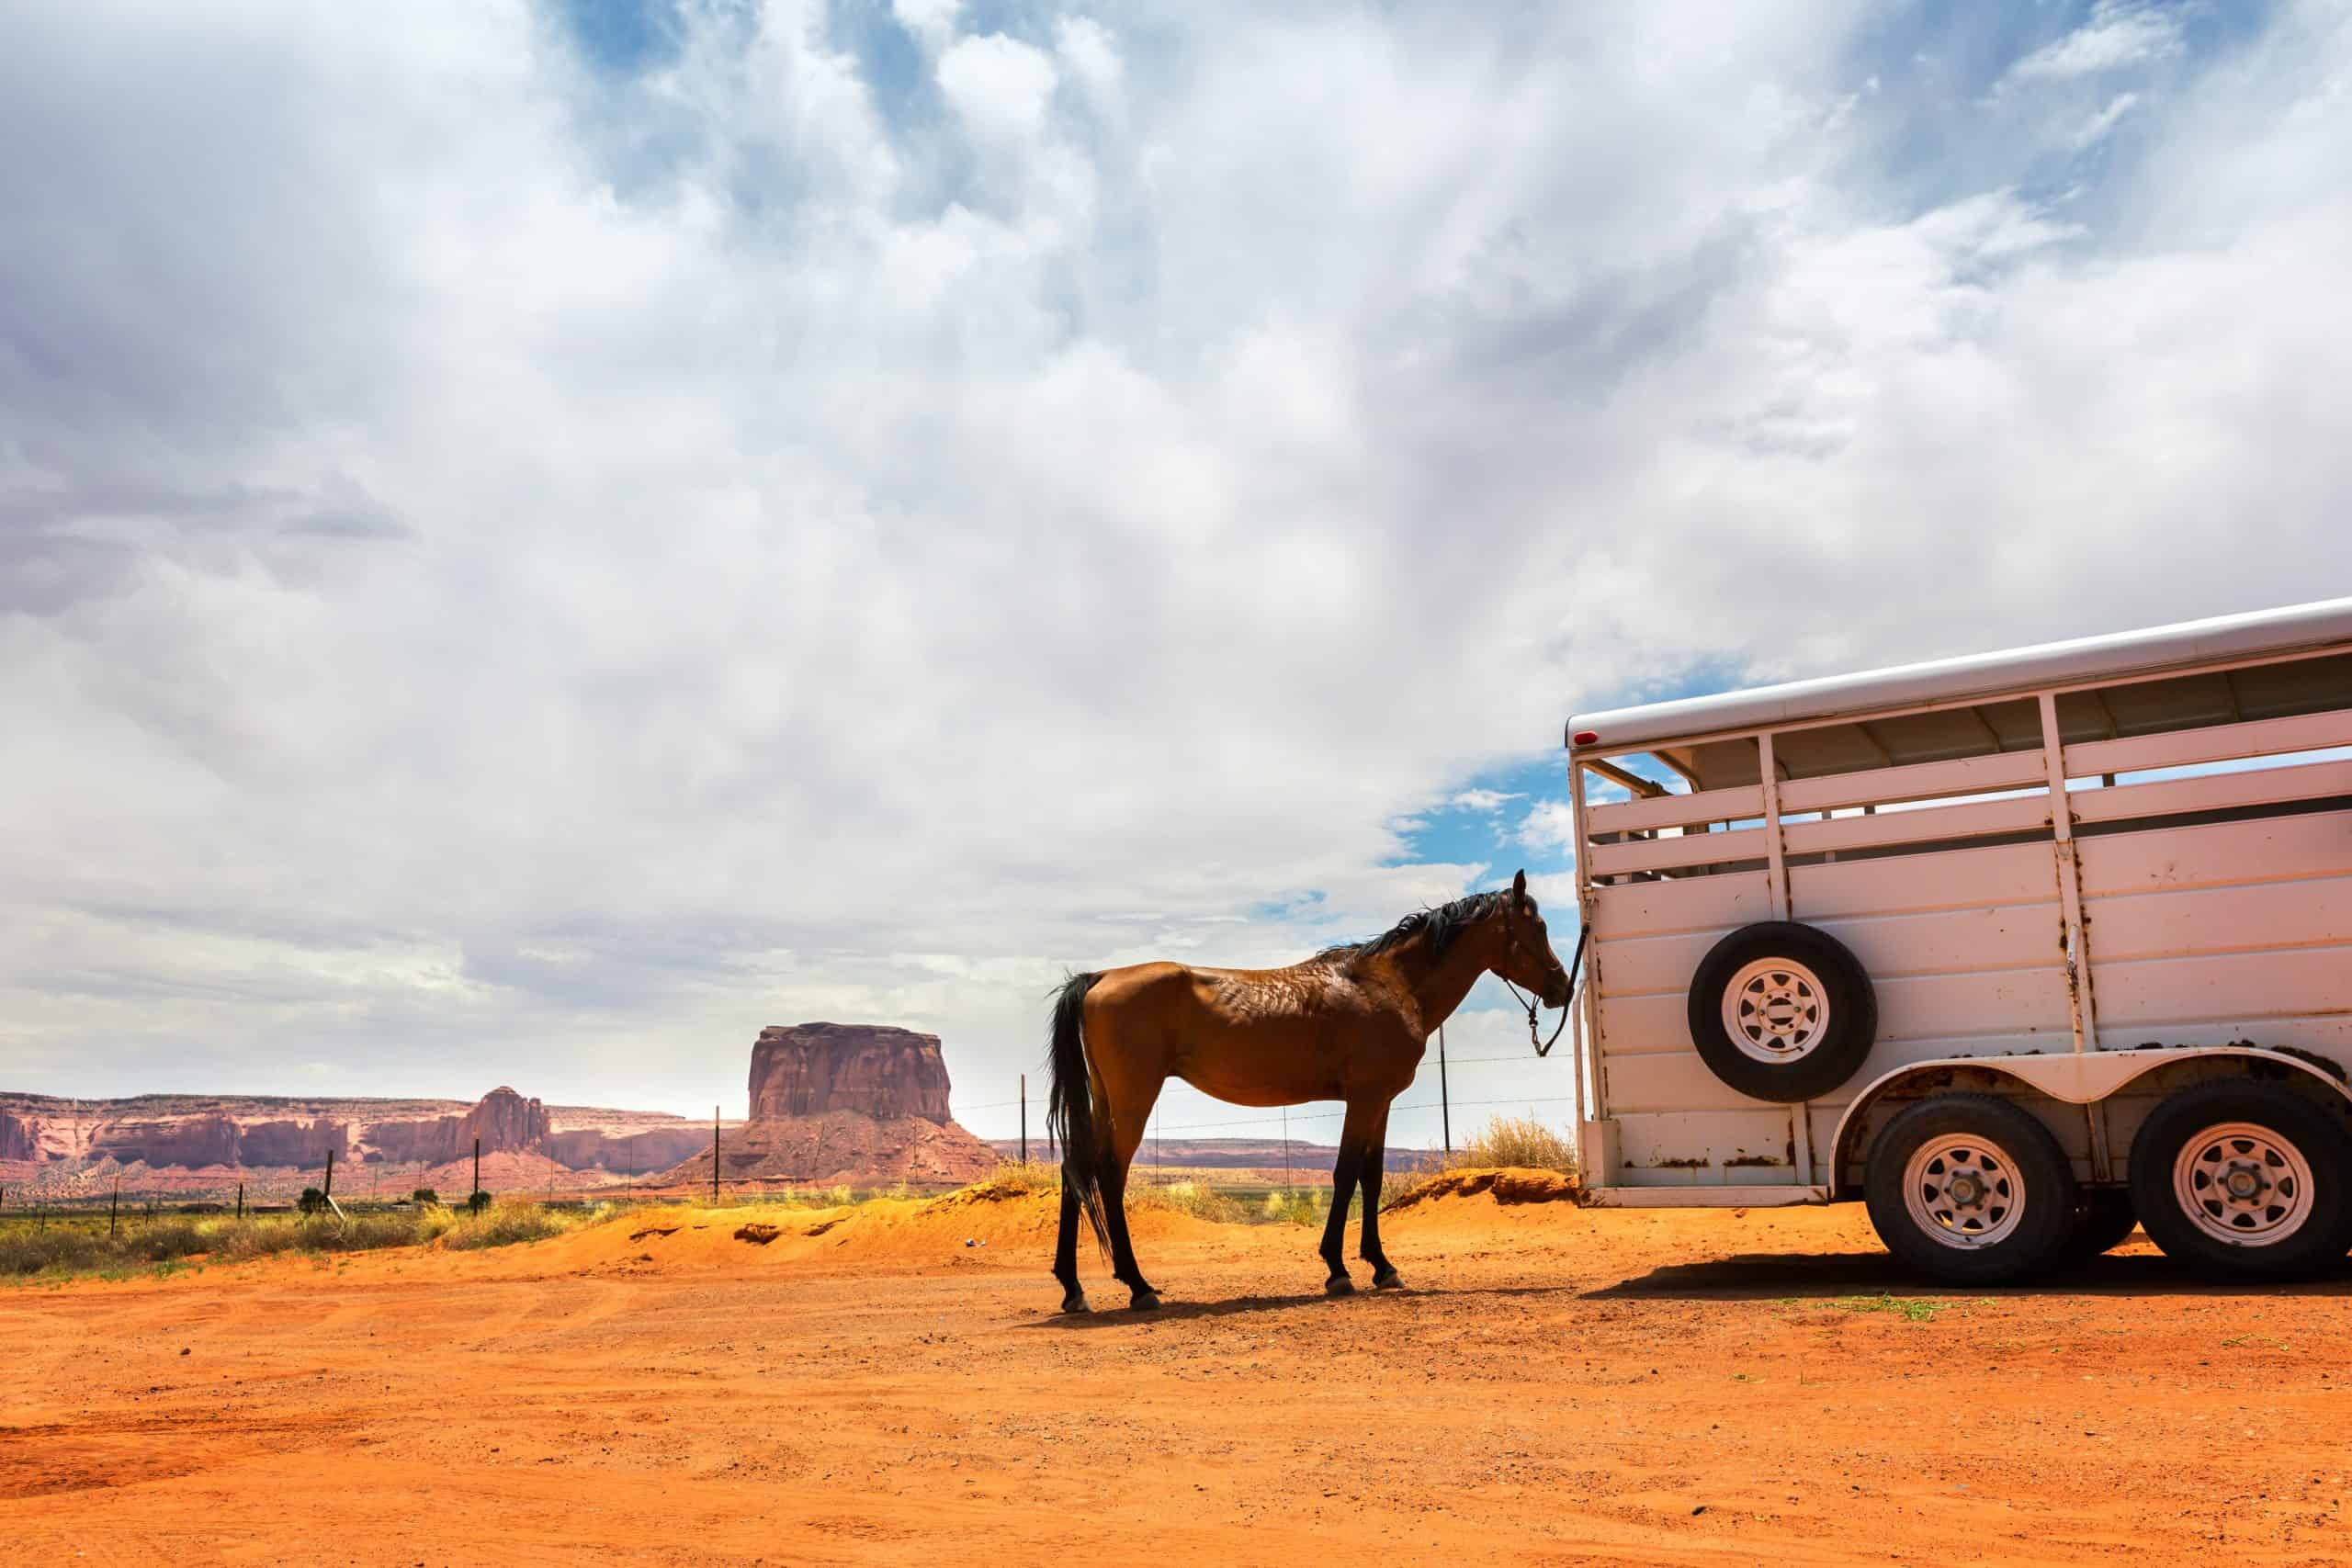 Horse near the trailer. Monument valley travaling